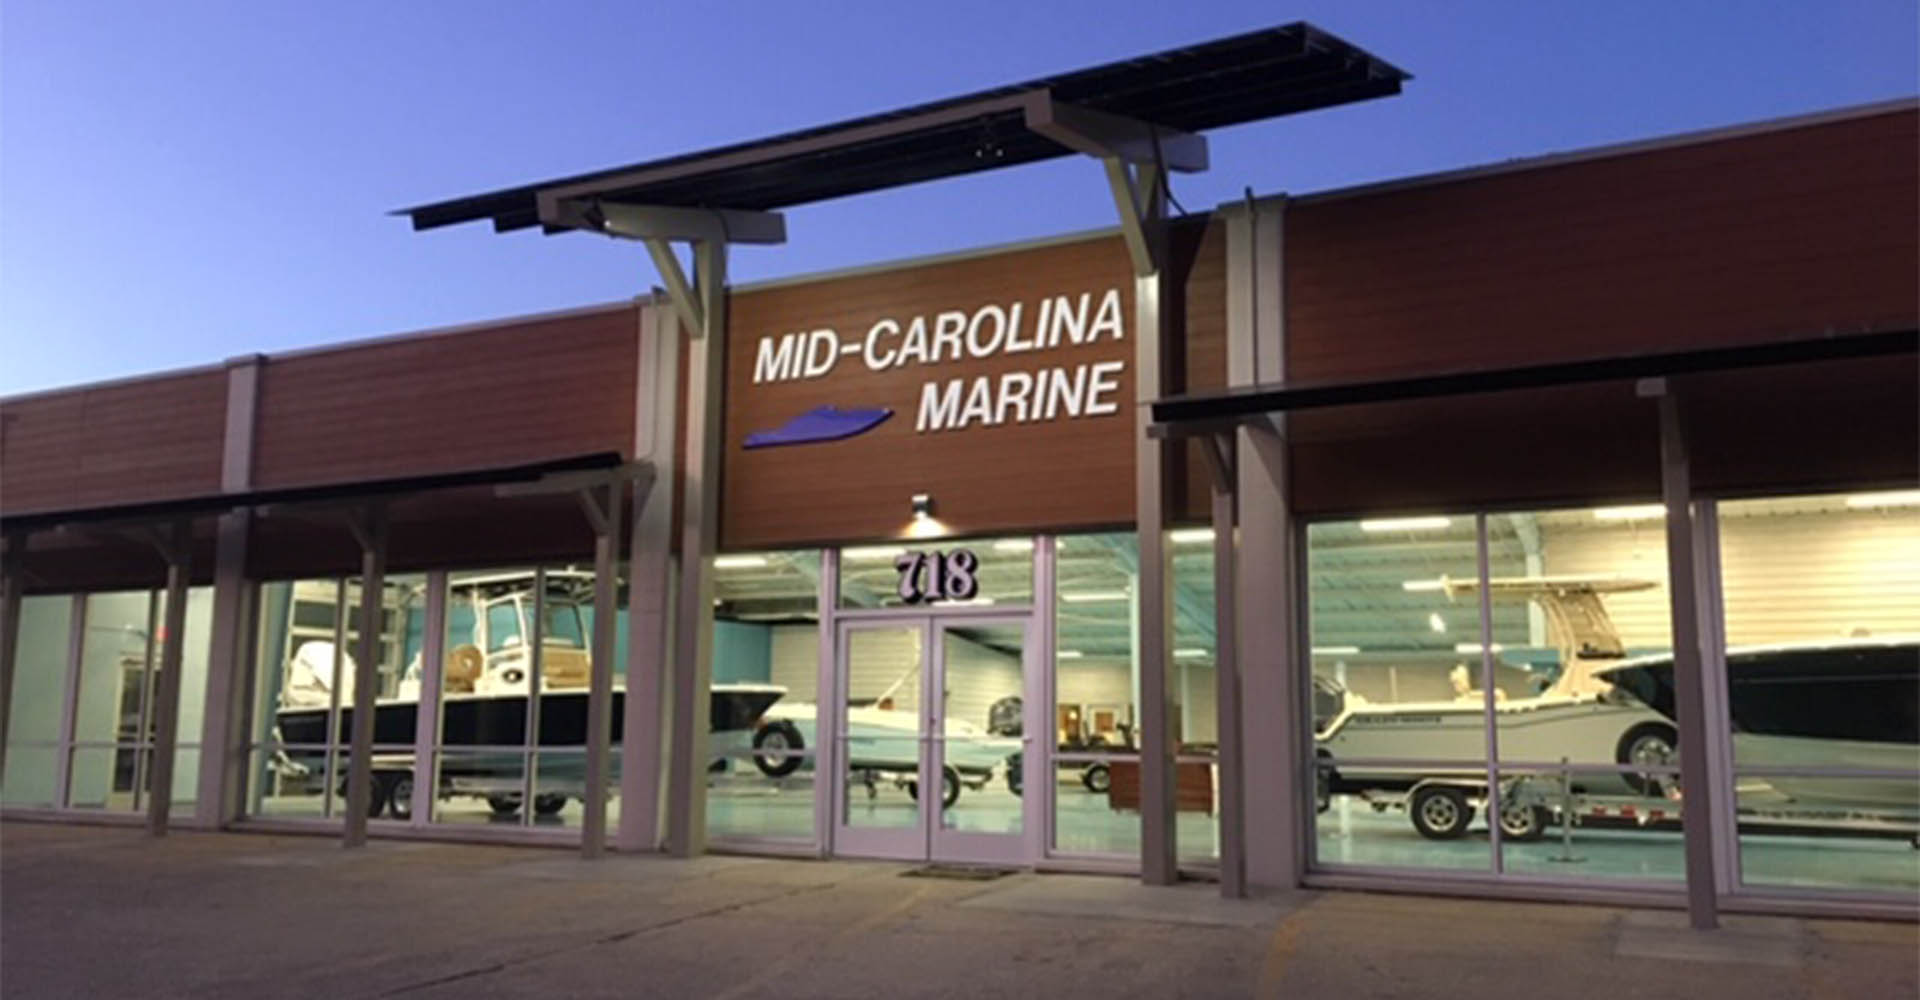 Store front image for the dealership located at West Columbia, SC